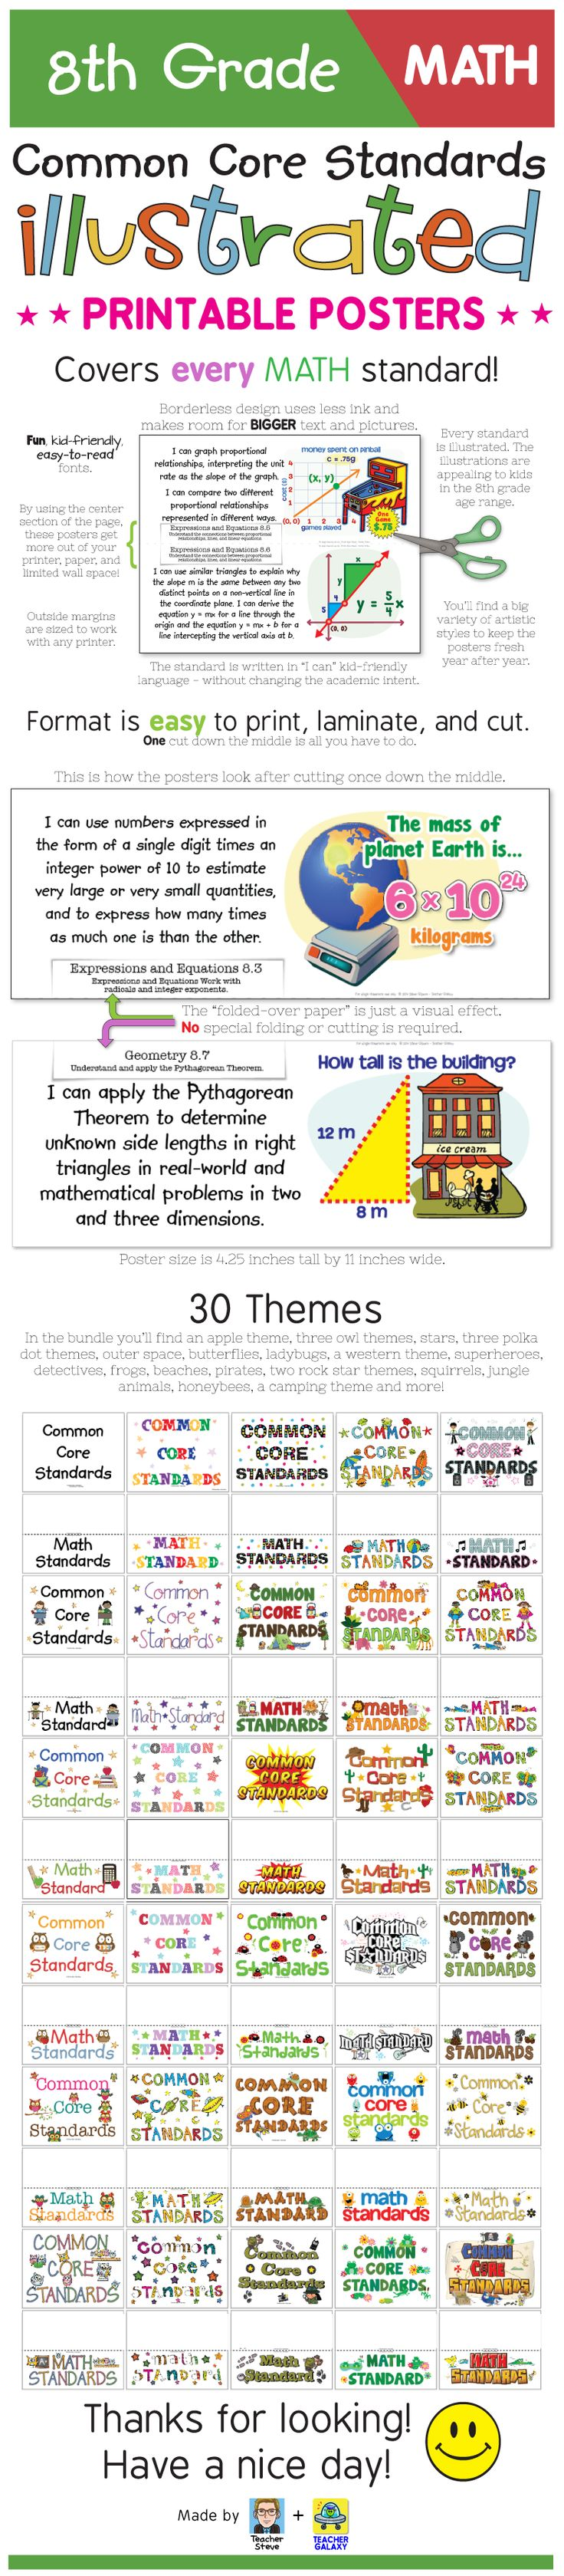 """These posters for the 8th grade math Common Core Standards bring the standard to life and make it easier to understand with age-appropriate illustrations and kid-friendly """"I can"""" language. The posters have a unique borderless design that will get the most out of your wall space and paper. 30 themes to choose from - or use them without a theme - that works, too! Big, colorful, age-appropriate posters for the eighth grade math common core! $"""